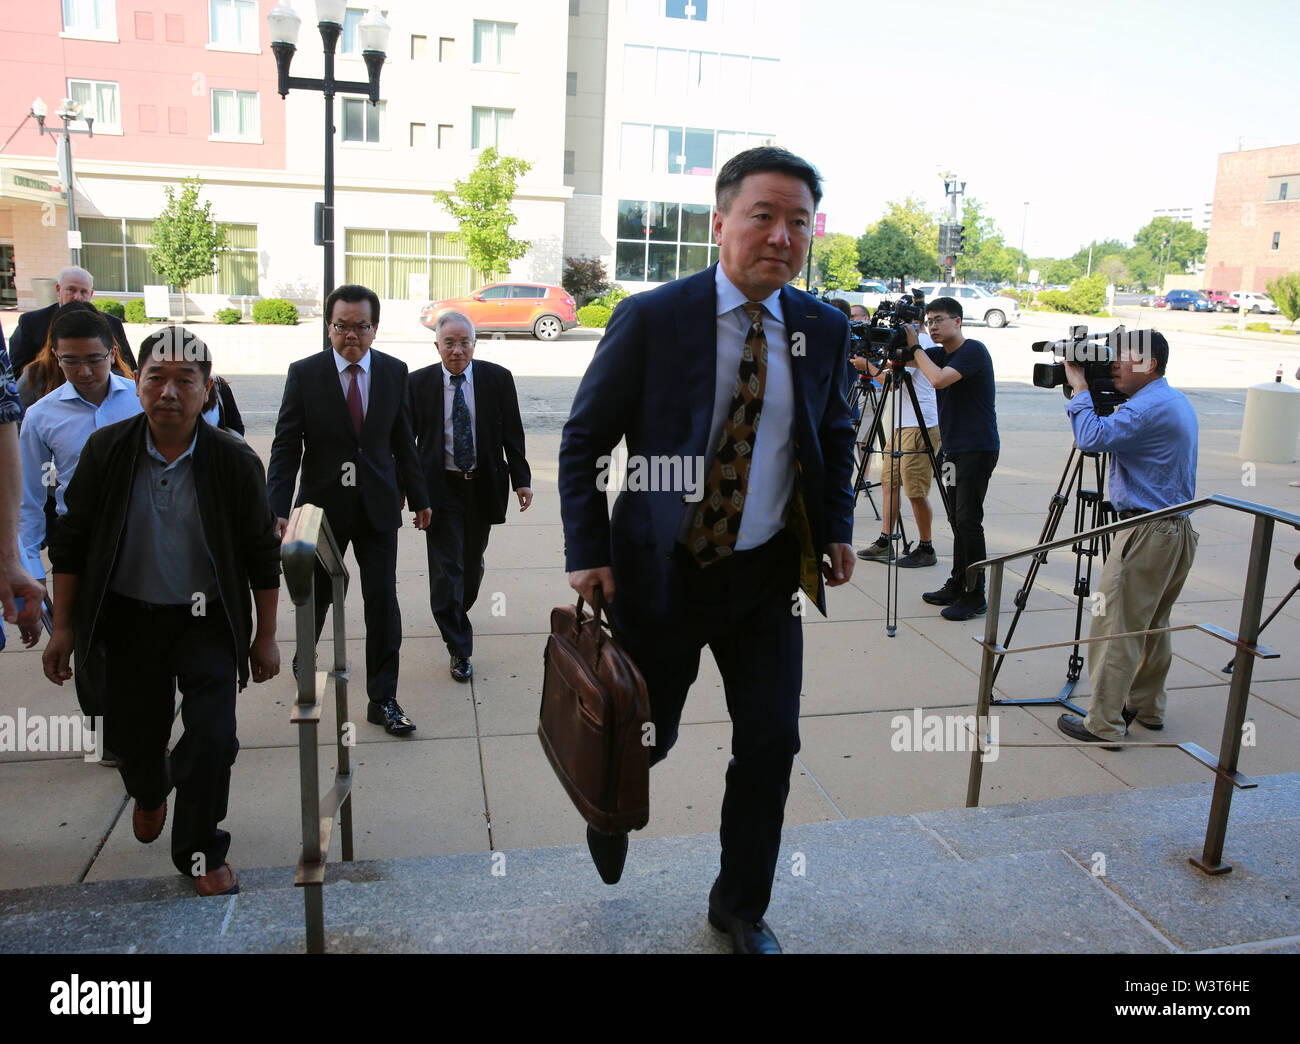 (190717) -- PEORIA (U.S.), July 17, 2019 (Xinhua) -- Wang Zhidong (Front), legal adviser to the family of visiting Chinese scholar Zhang Yingying, heads to the federal courthouse building in Peoria, Illinois, the United States, on July 17, 2019. After a U.S. judge concludes all the evidence from the sentencing phase in the Chinese scholar slaying trial Tuesday, closing arguments from both prosecutors and the defense started here Wednesday morning. The closing arguments of the sentencing phase for Brendt Christensen who was found guilty of killing Zhang Yingying in 2017 took place around 9 a.m. - Stock Image